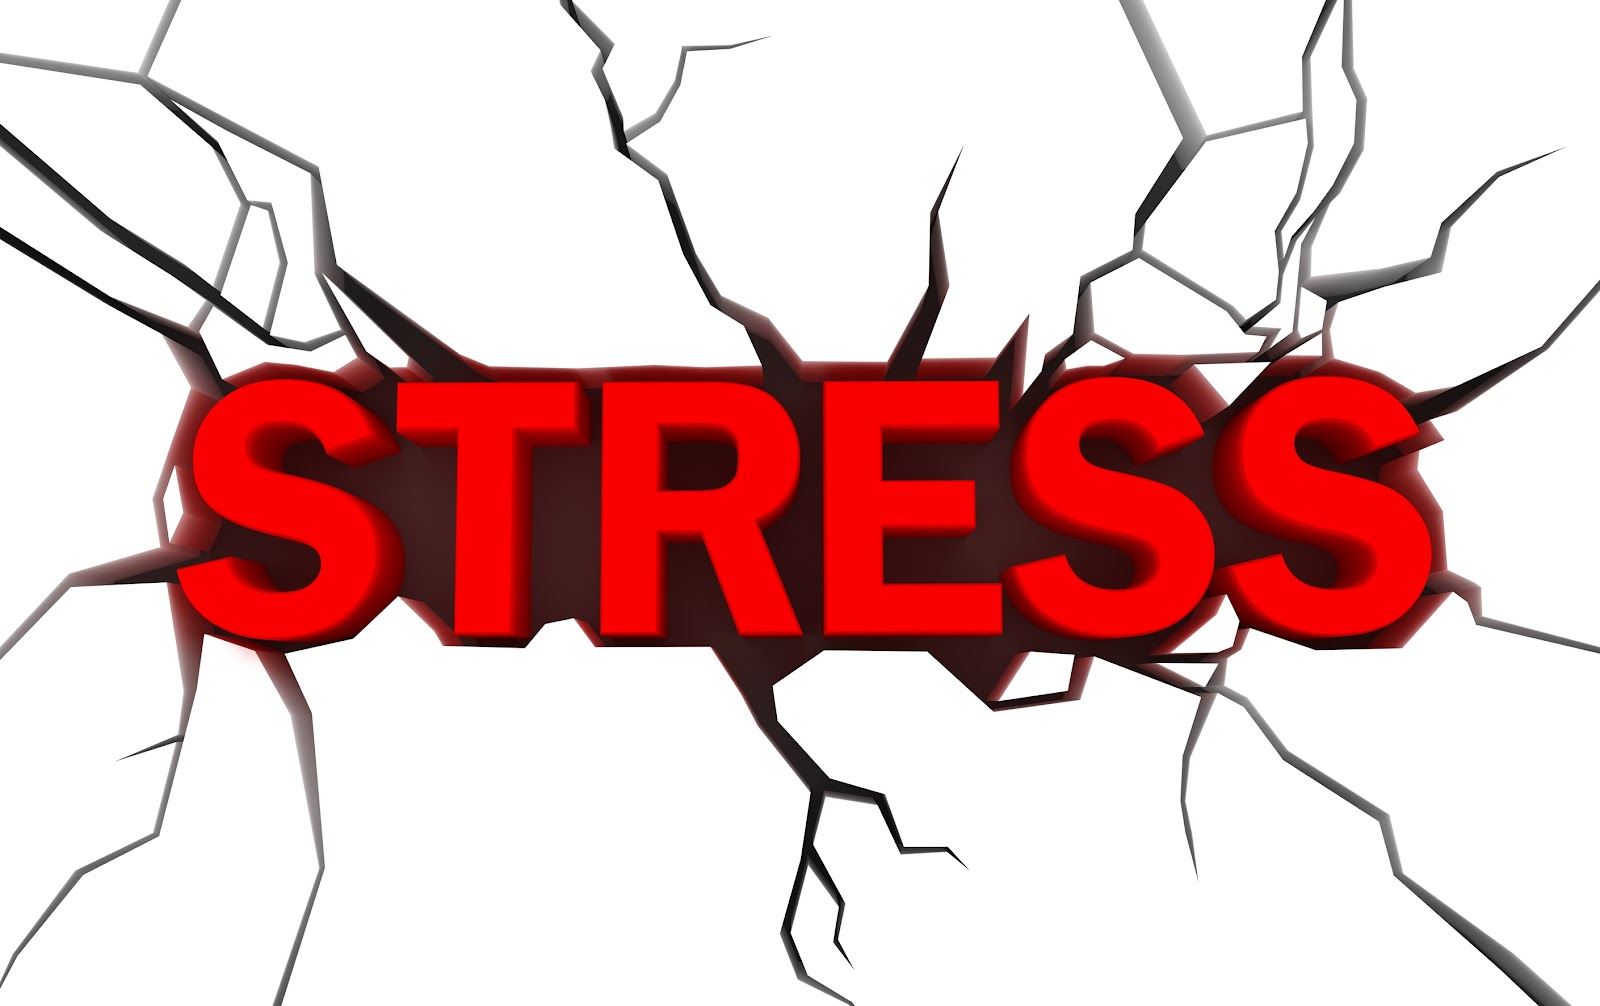 Stress clipart stress word. Clip art of someone